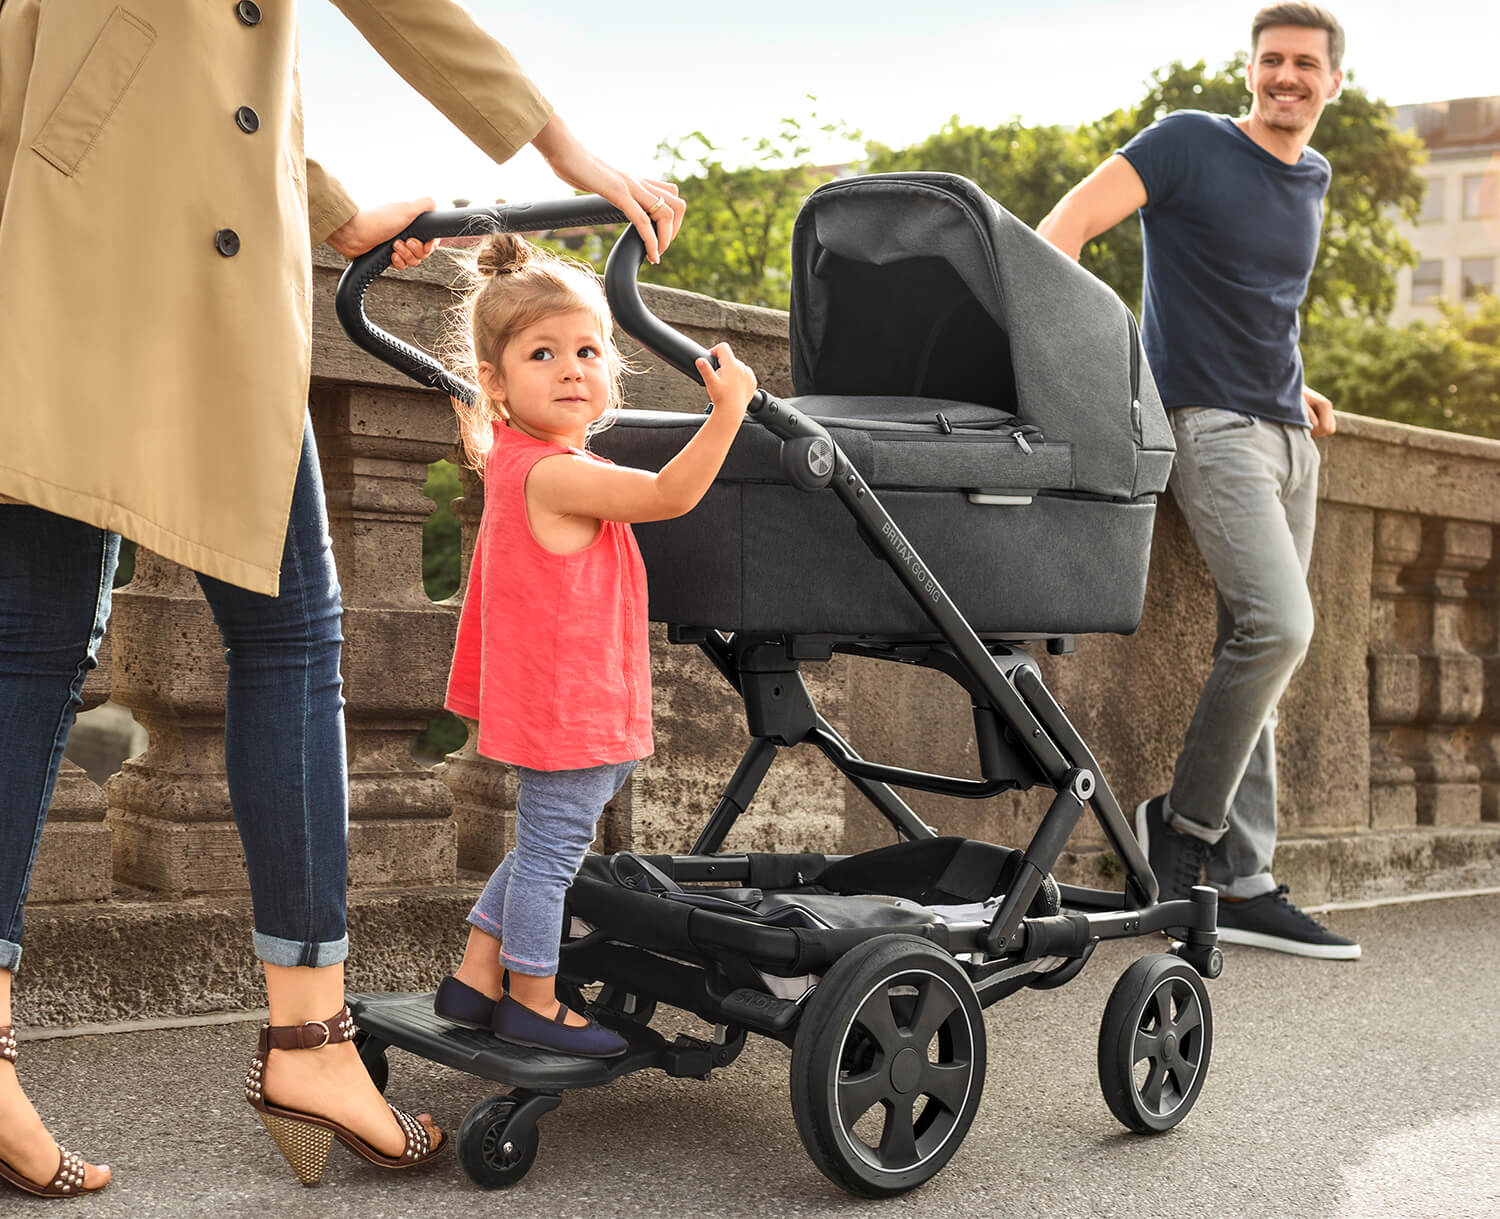 What to Try to Find Different Designs of Baby Strollers?